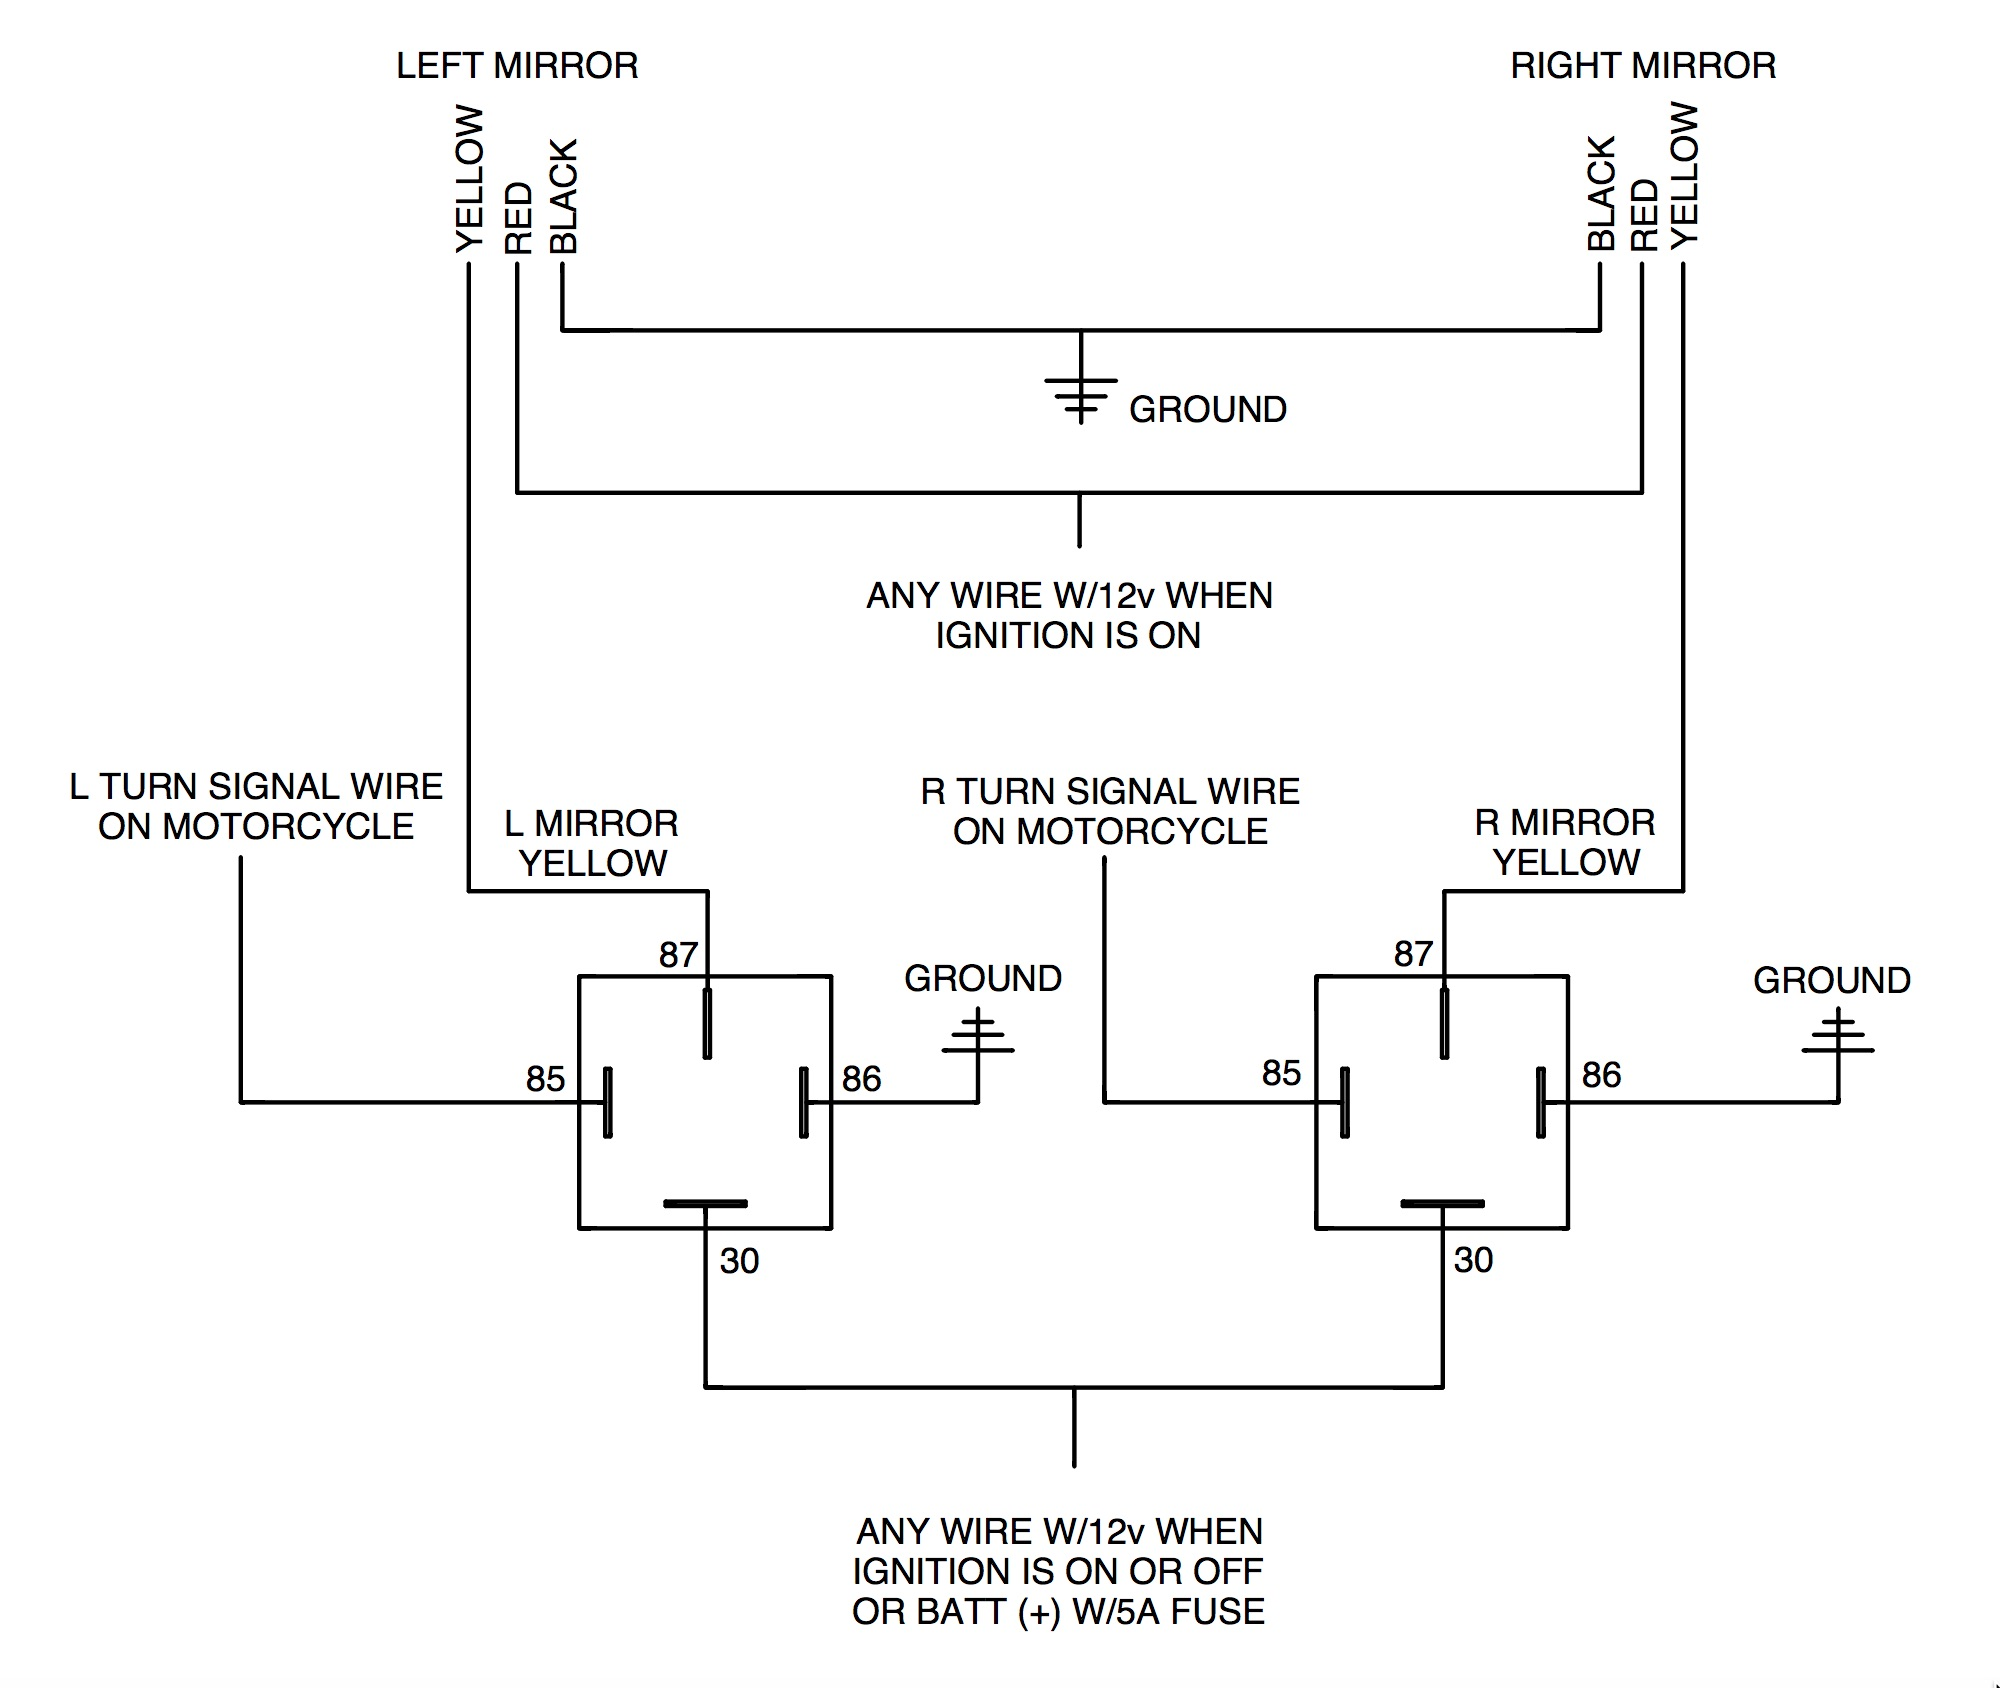 Rivco dual relay diagram adding rivco led mirrors to a victory cross country motorcycle Basic Turn Signal Wiring Diagram at mifinder.co